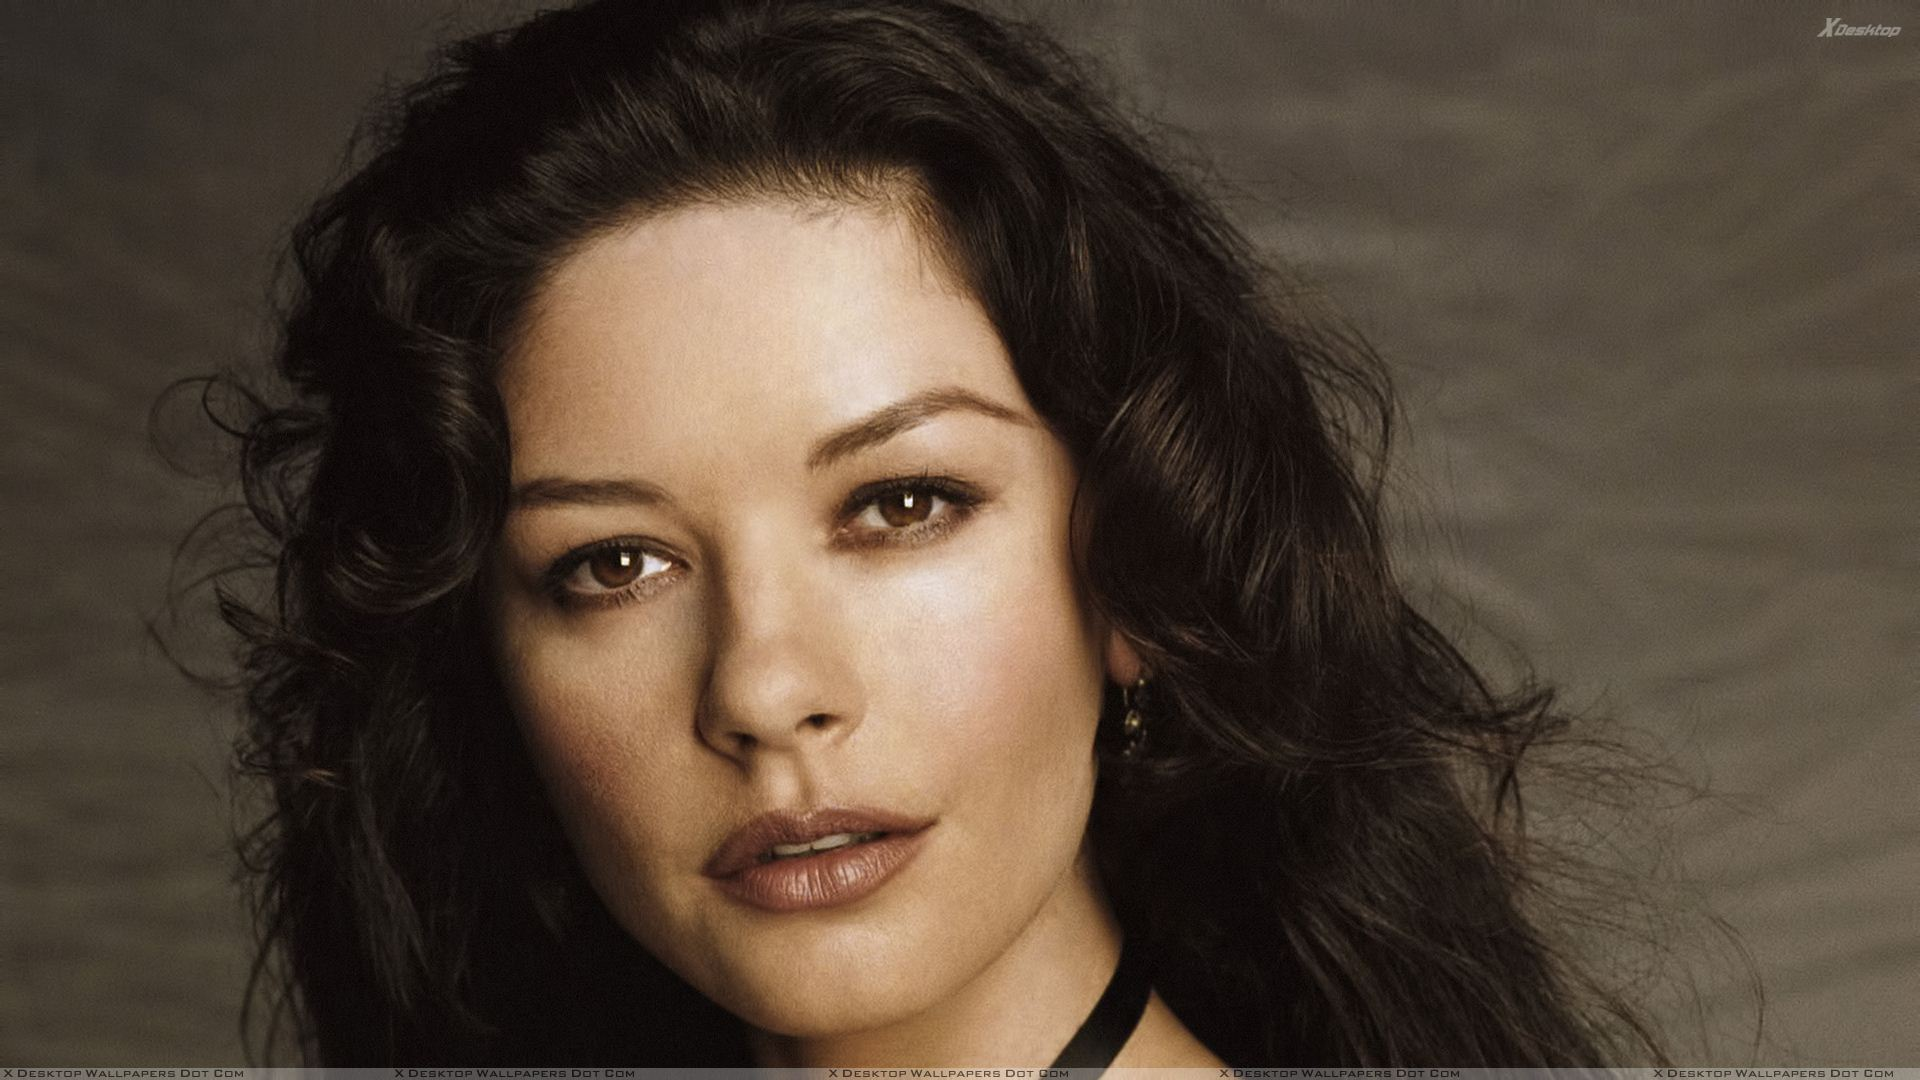 Catherine Zeta-Jones Wallpapers, Photos & Images in HD